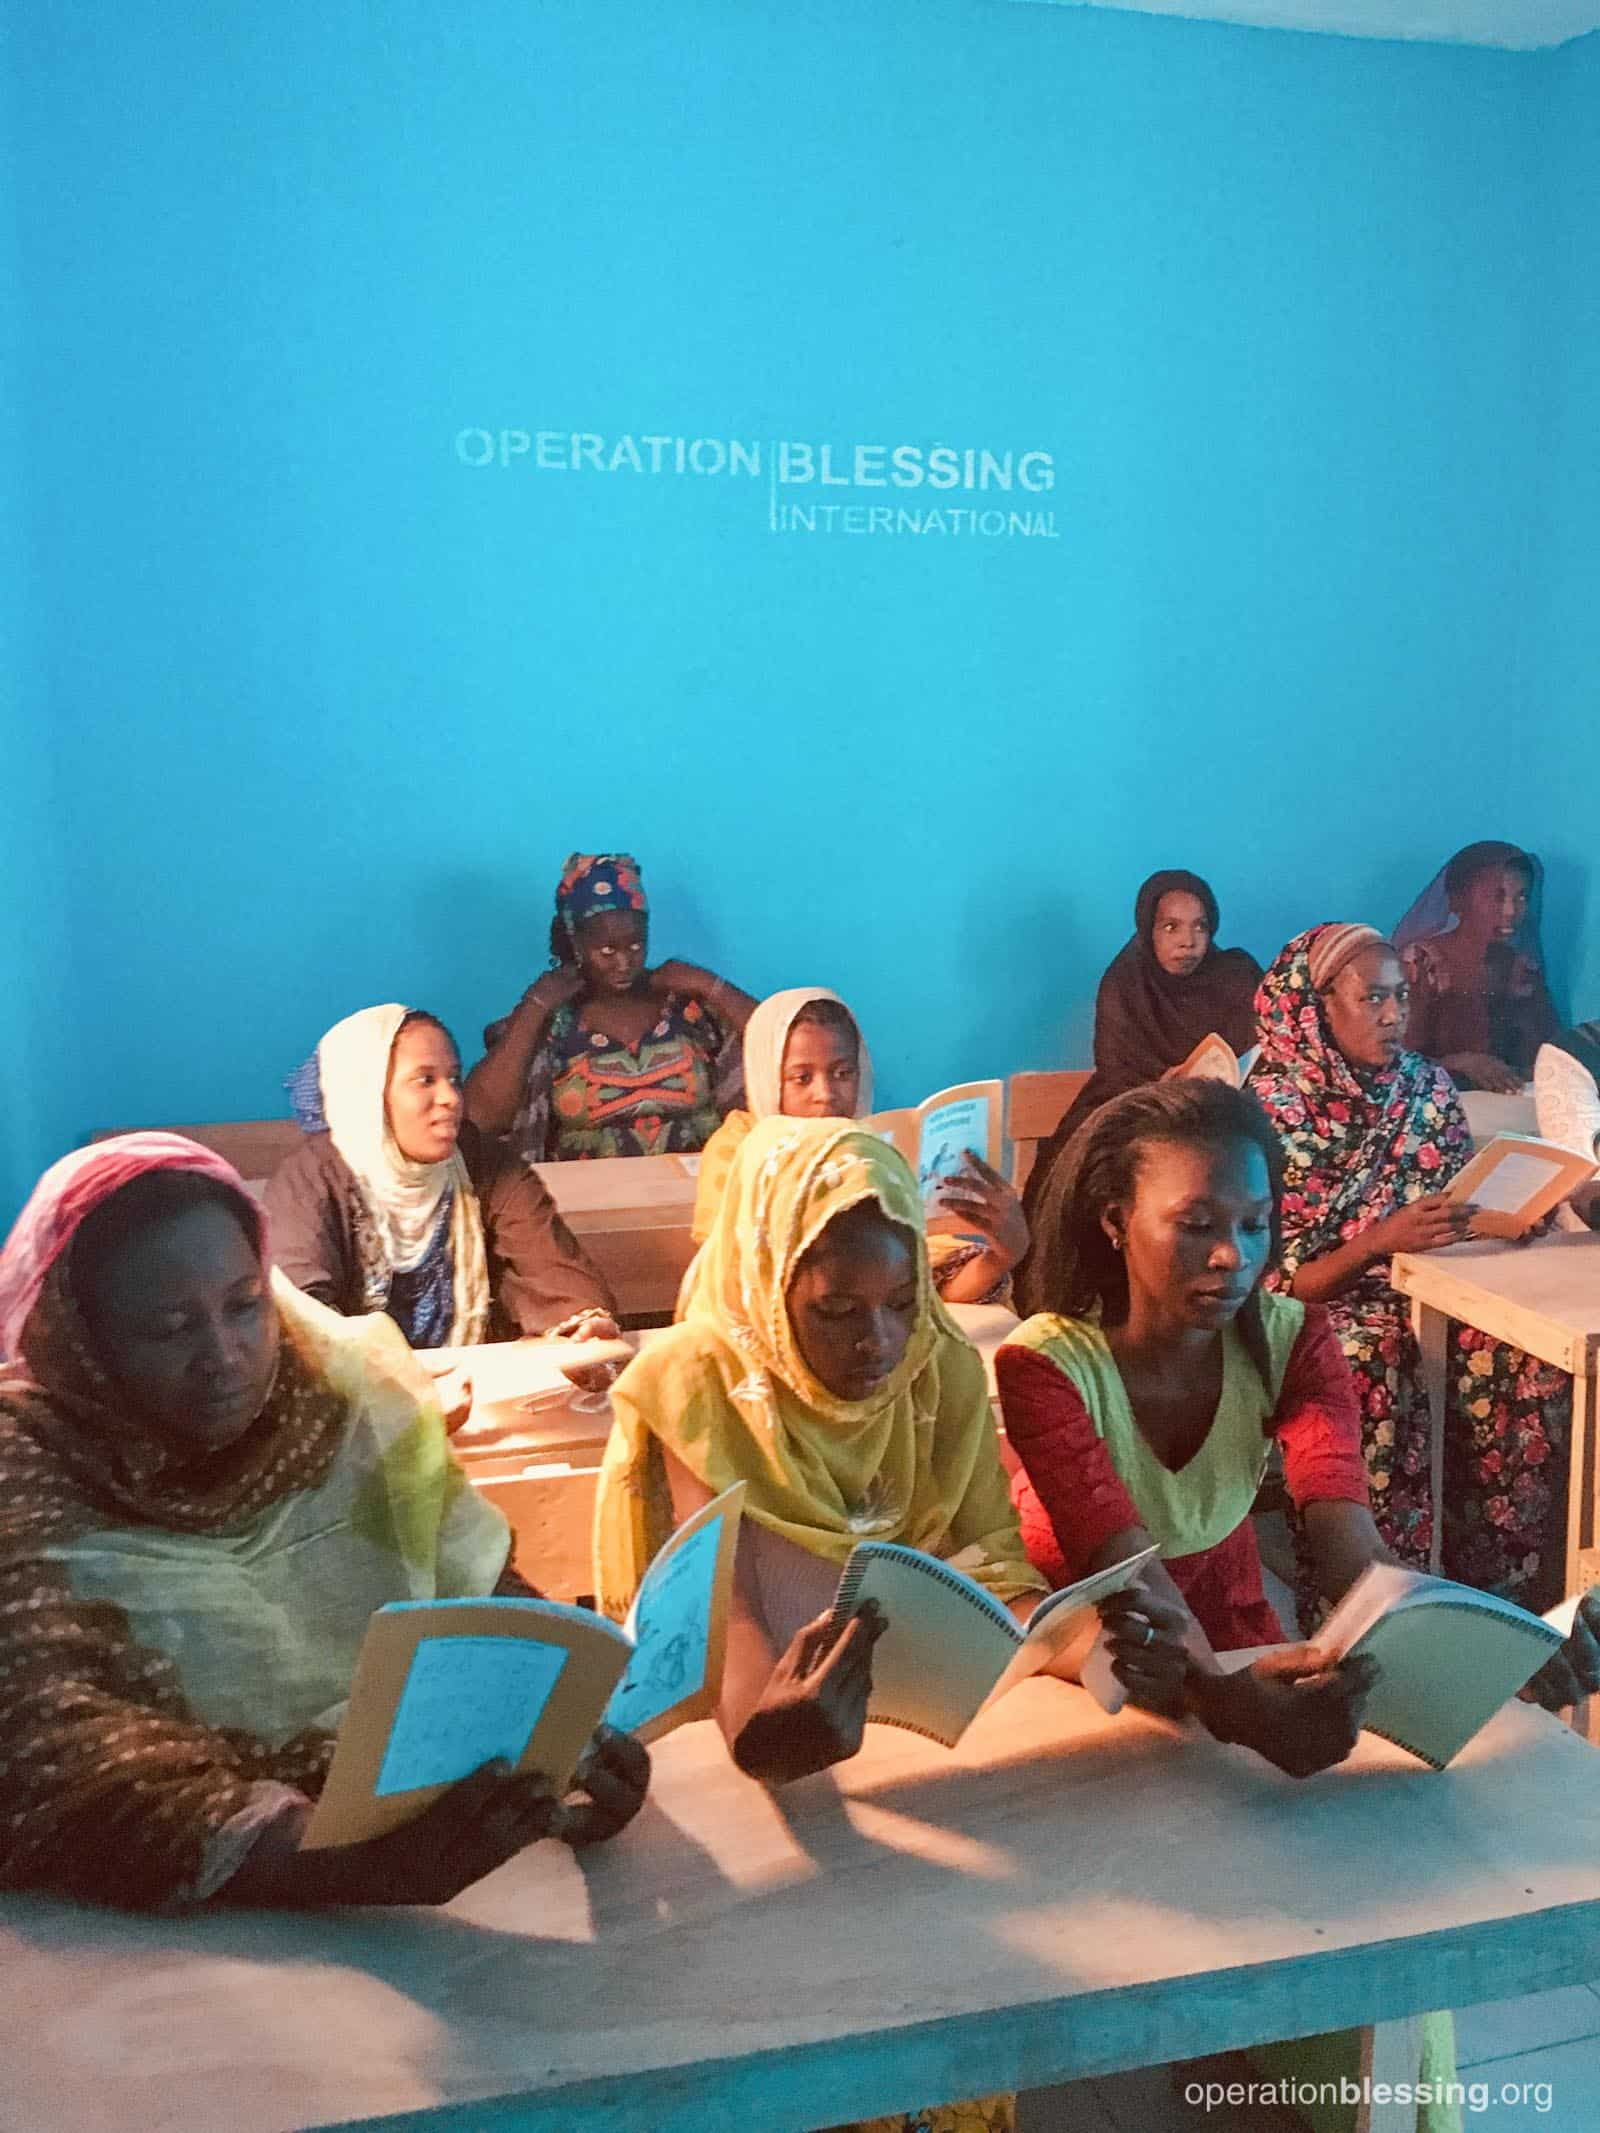 Women in Mauritania learning lifeskills and literacy.